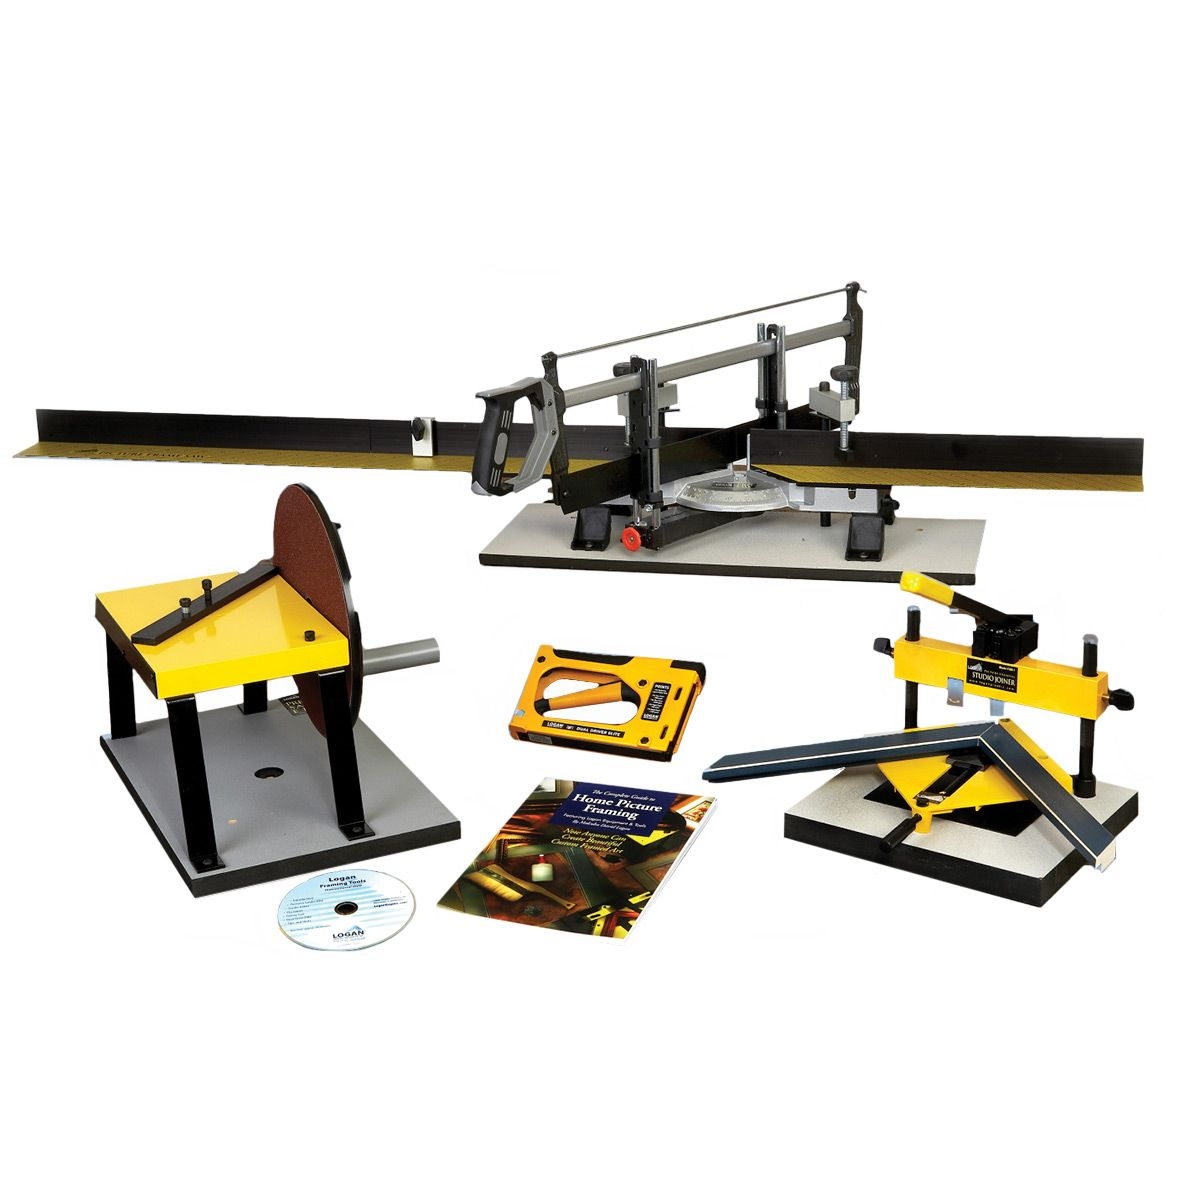 FRAME SHOP IN A BOX ELITE LOGAN GRAPHICS PRODUCTS | Art Room ...